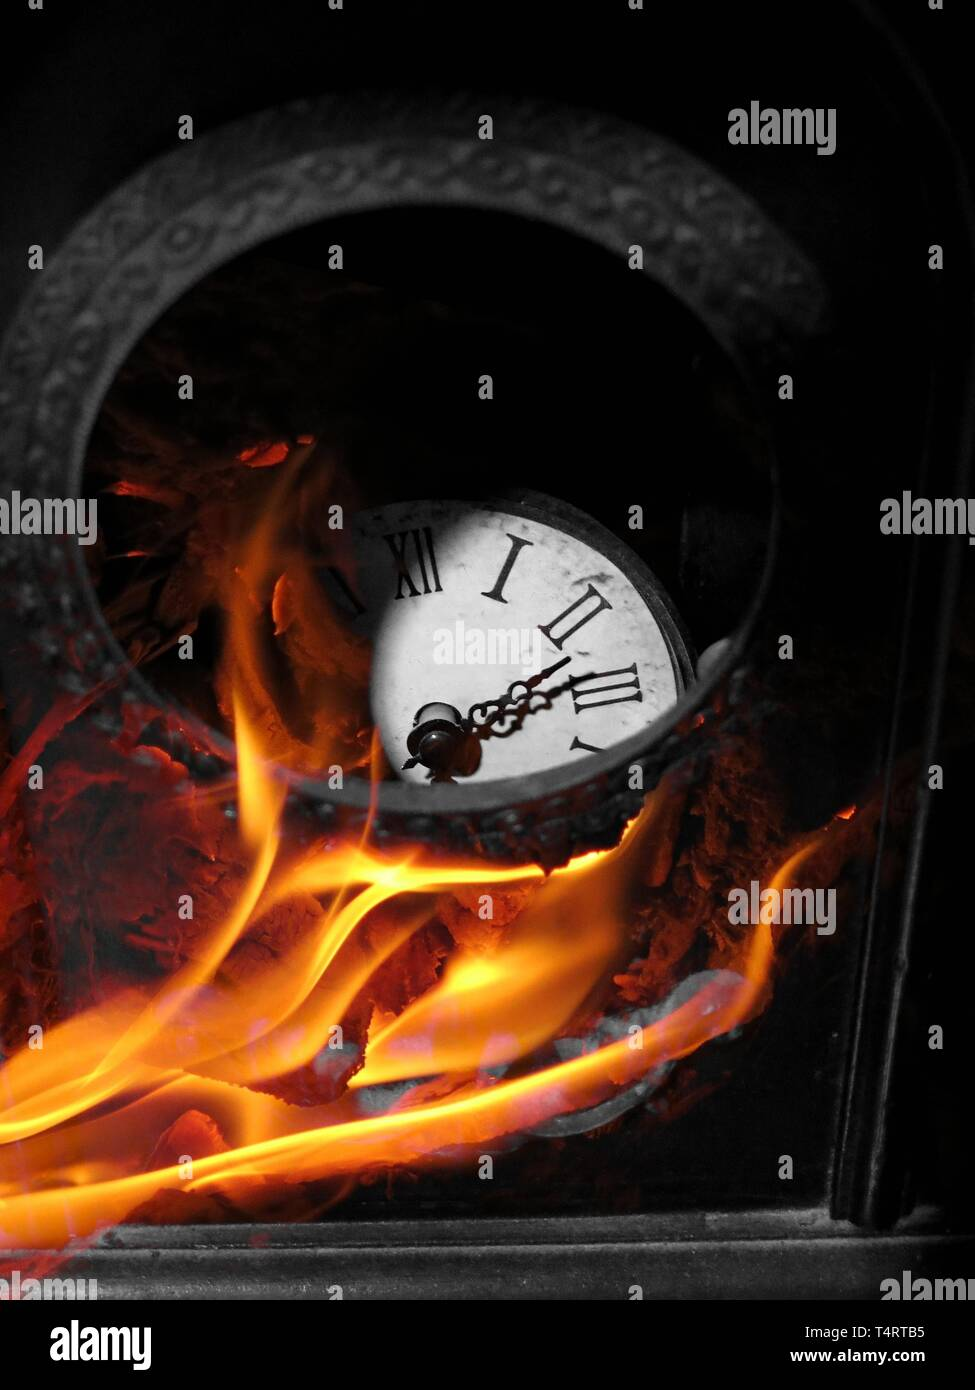 Antique clock on fire. - Stock Image